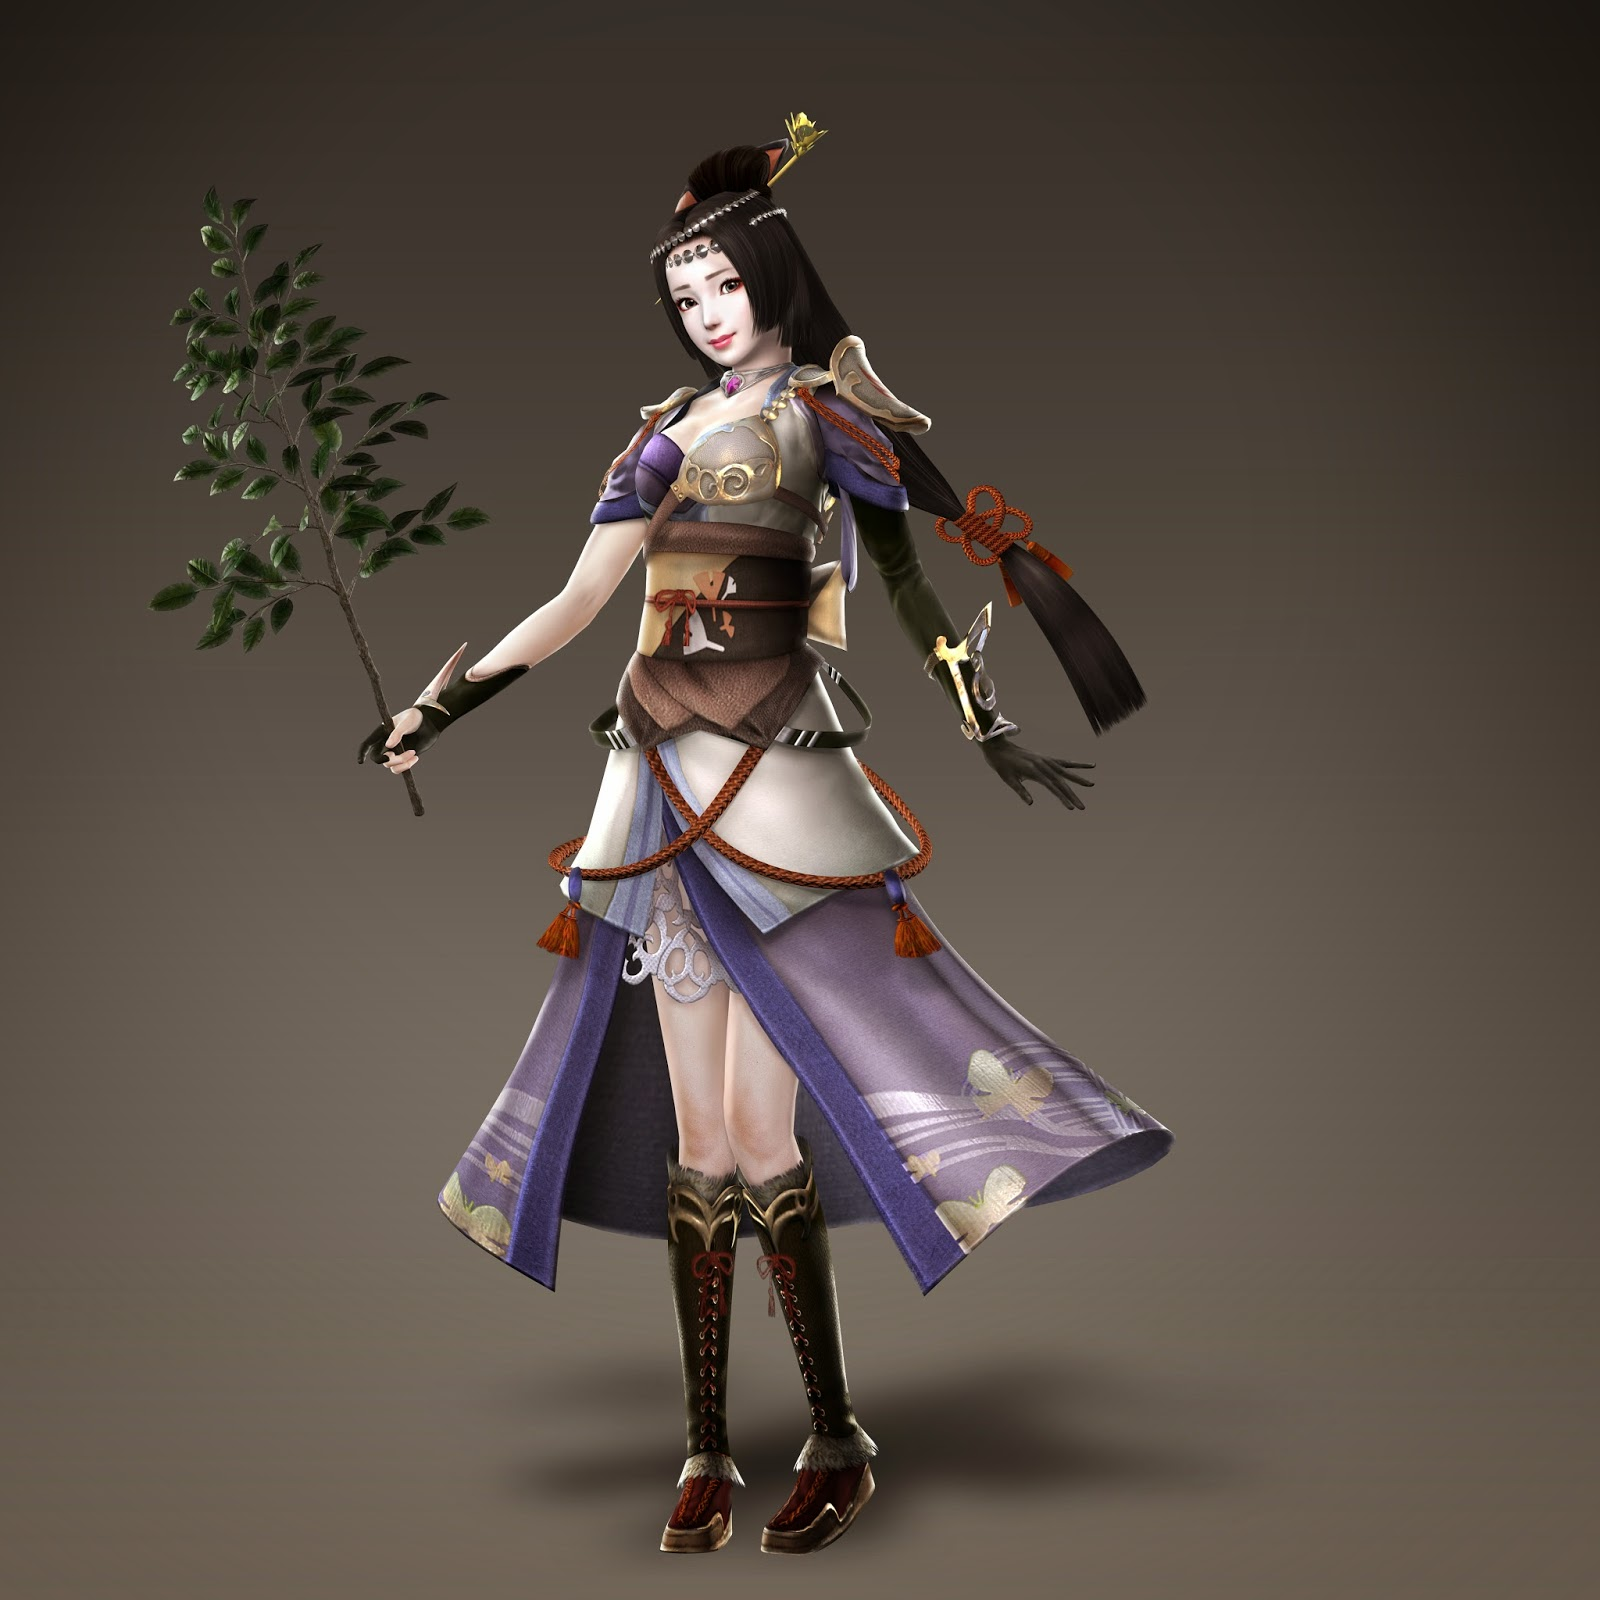 Warriors Orochi 4 How To Change Characters: WARRIORS OROCHI 3 Ultimate Street Dated